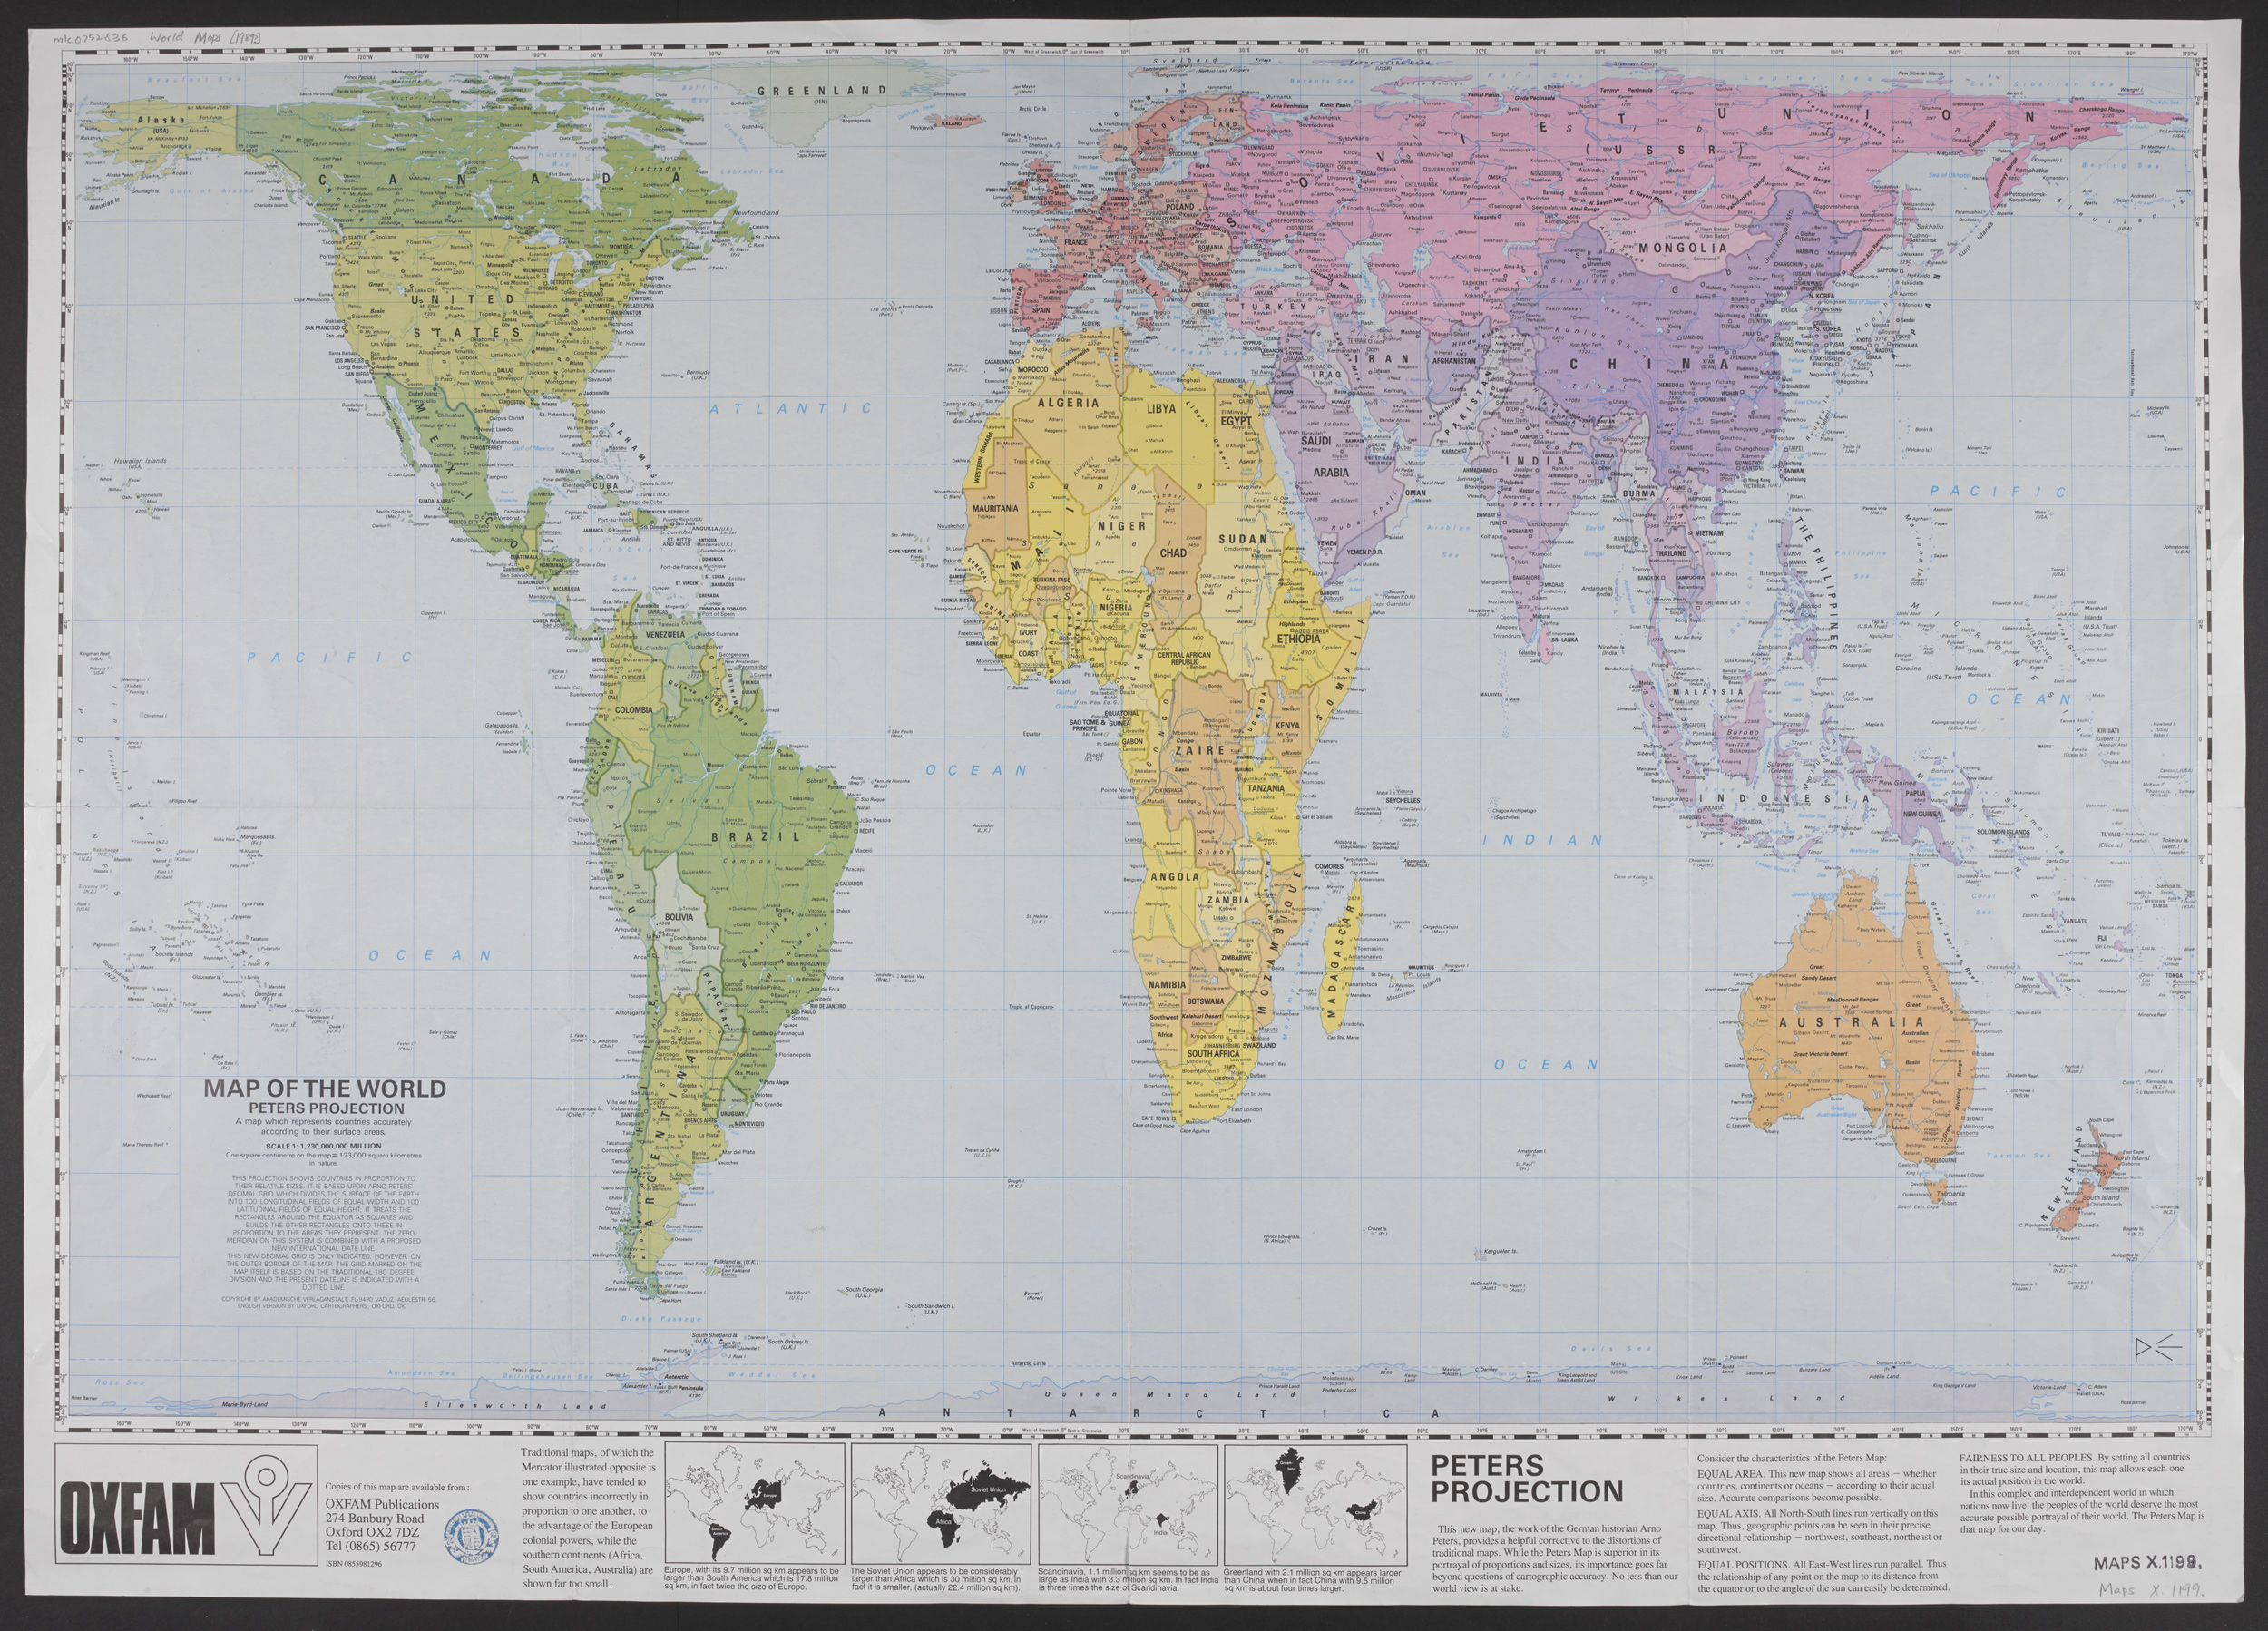 Map of the world – Peters projection - The British Library